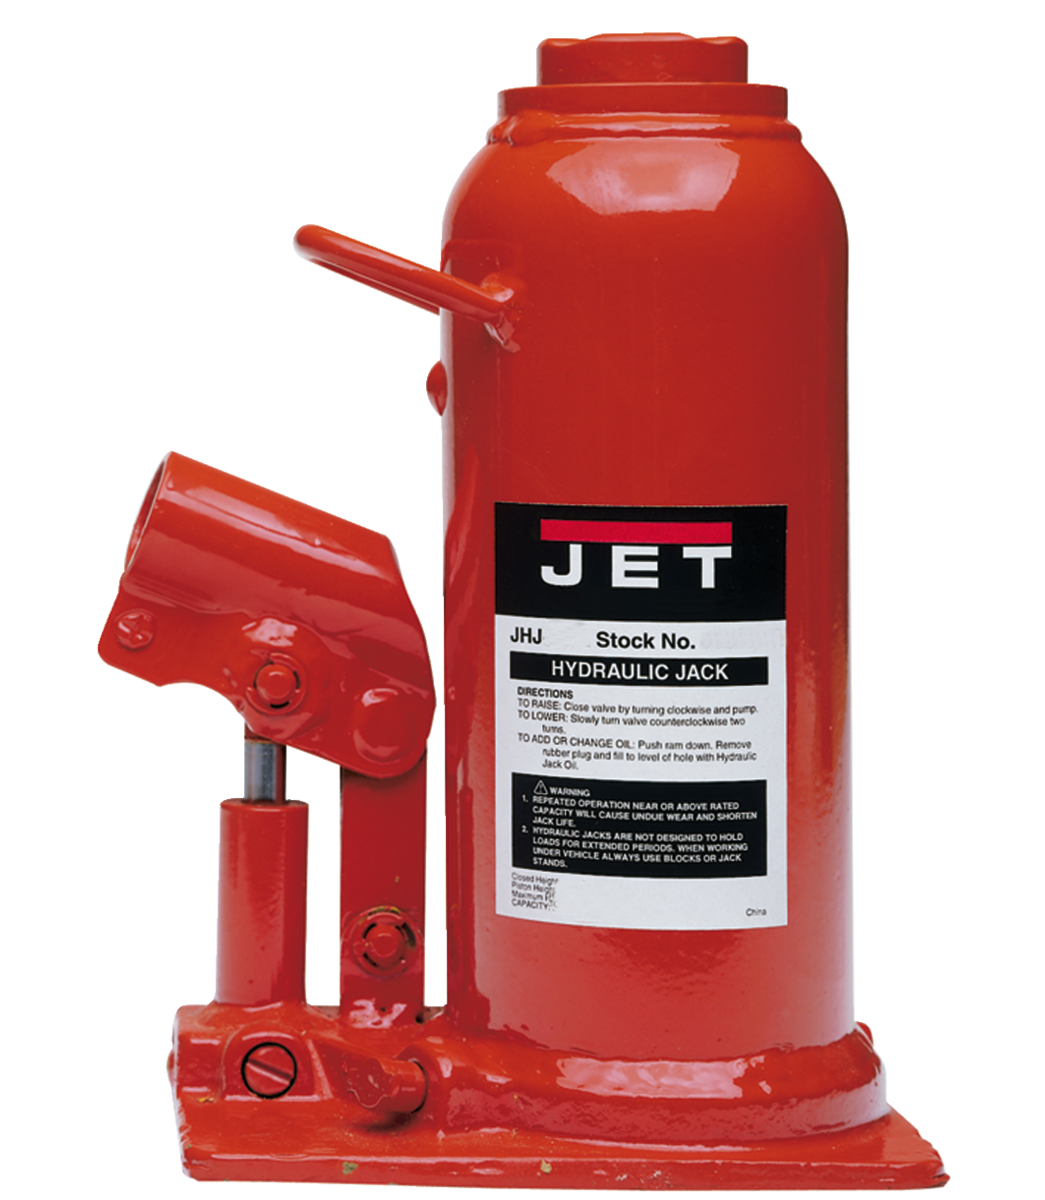 JHJ-5, 5-Ton Hydraulic Bottle Jack